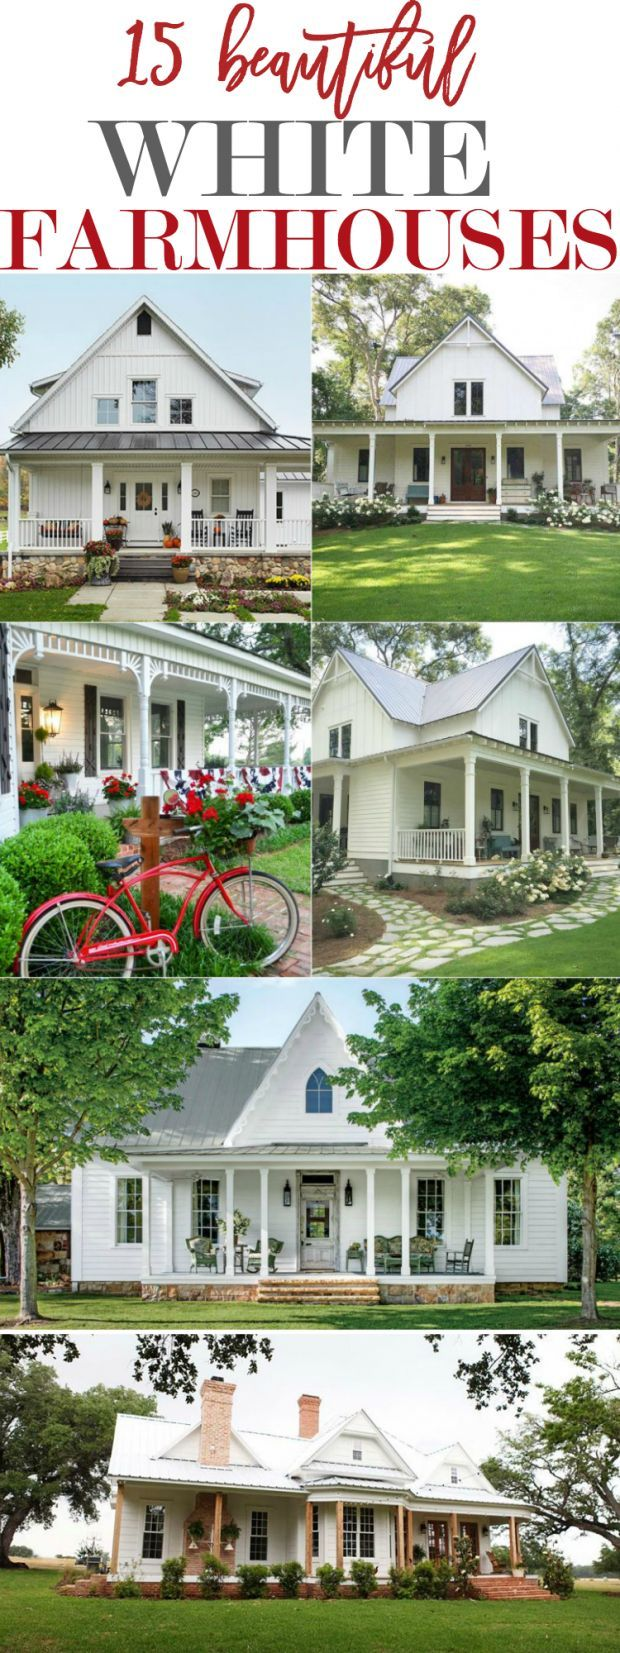 Best 25 Country farmhouse exterior ideas on Pinterest Country